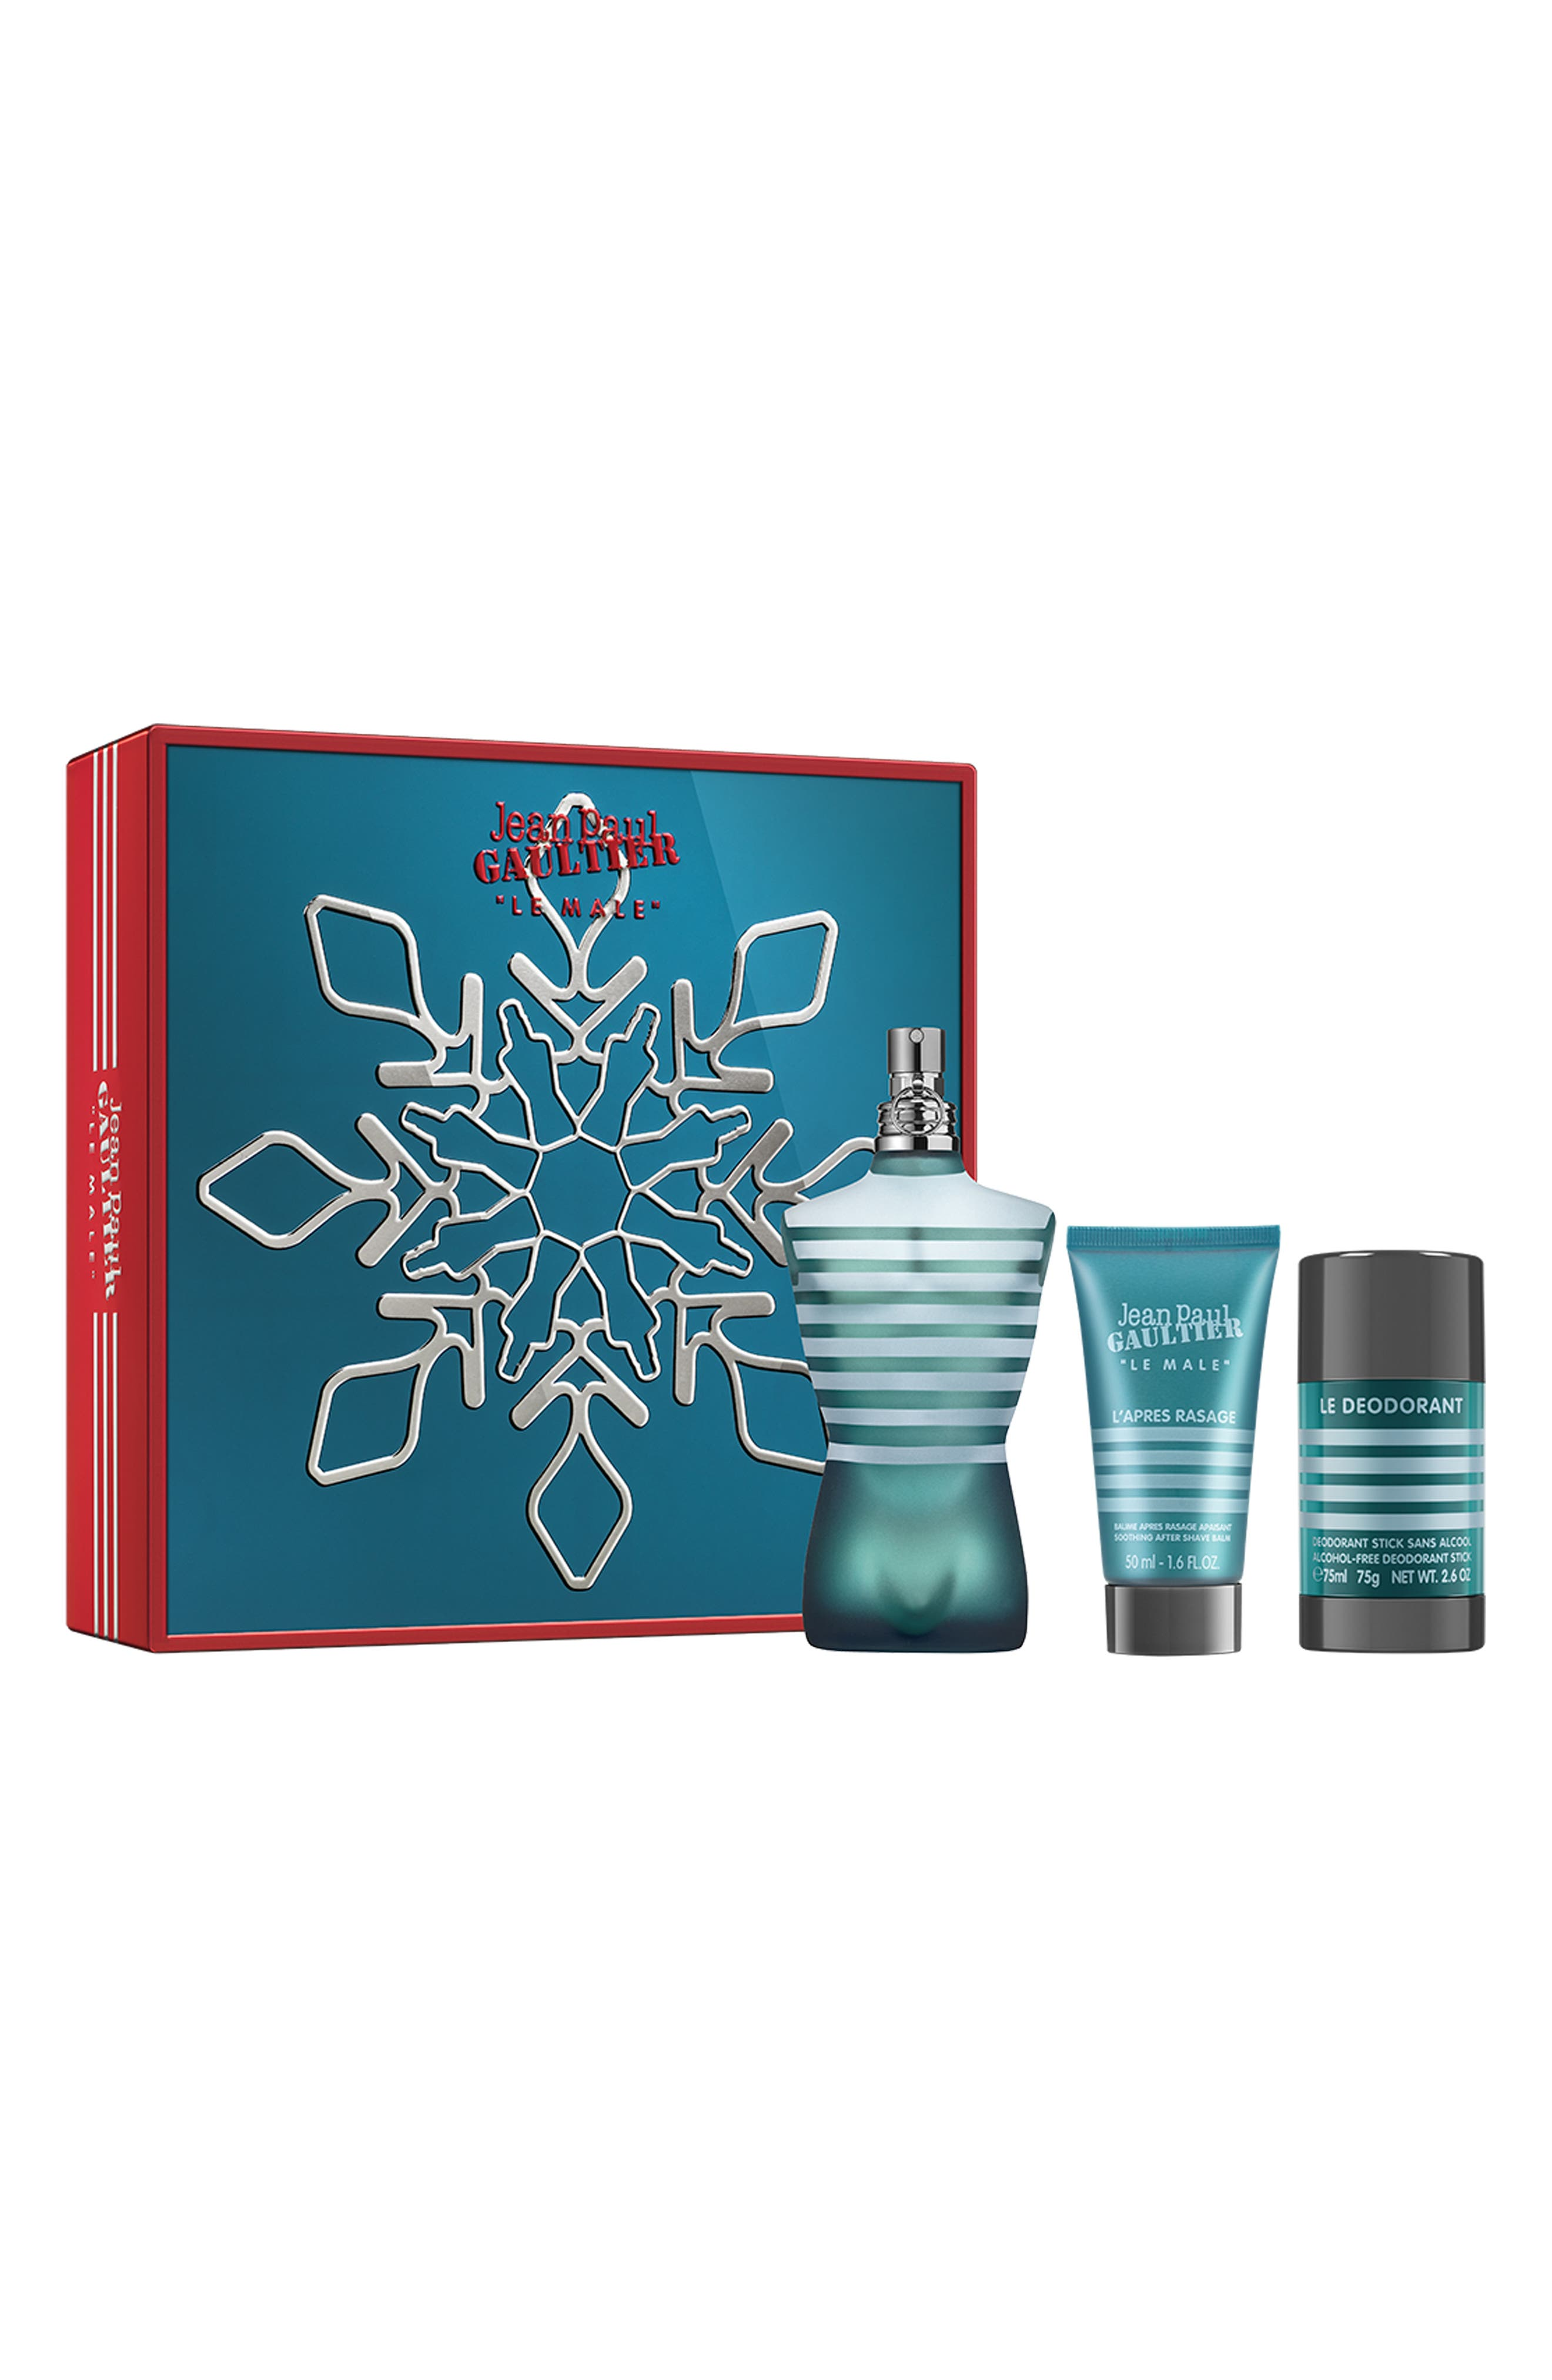 Jean Paul Gaultier Le Male Set ($148 Value)